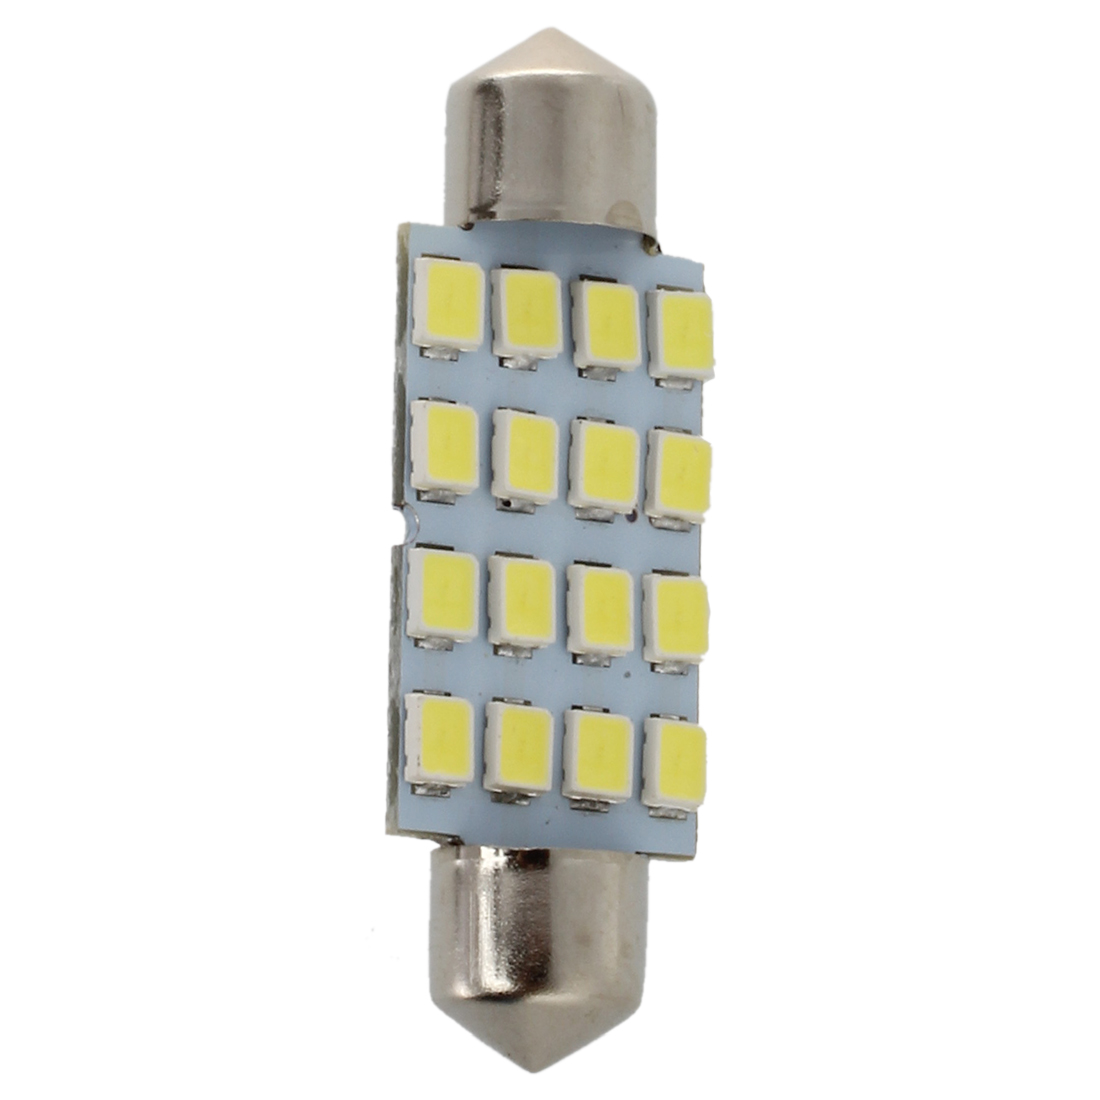 10x <font><b>42mm</b></font> 16 <font><b>LED</b></font> Interior White SMD 3528 Dome Light Lamp <font><b>Bulb</b></font> 211-2 578 212-2 image